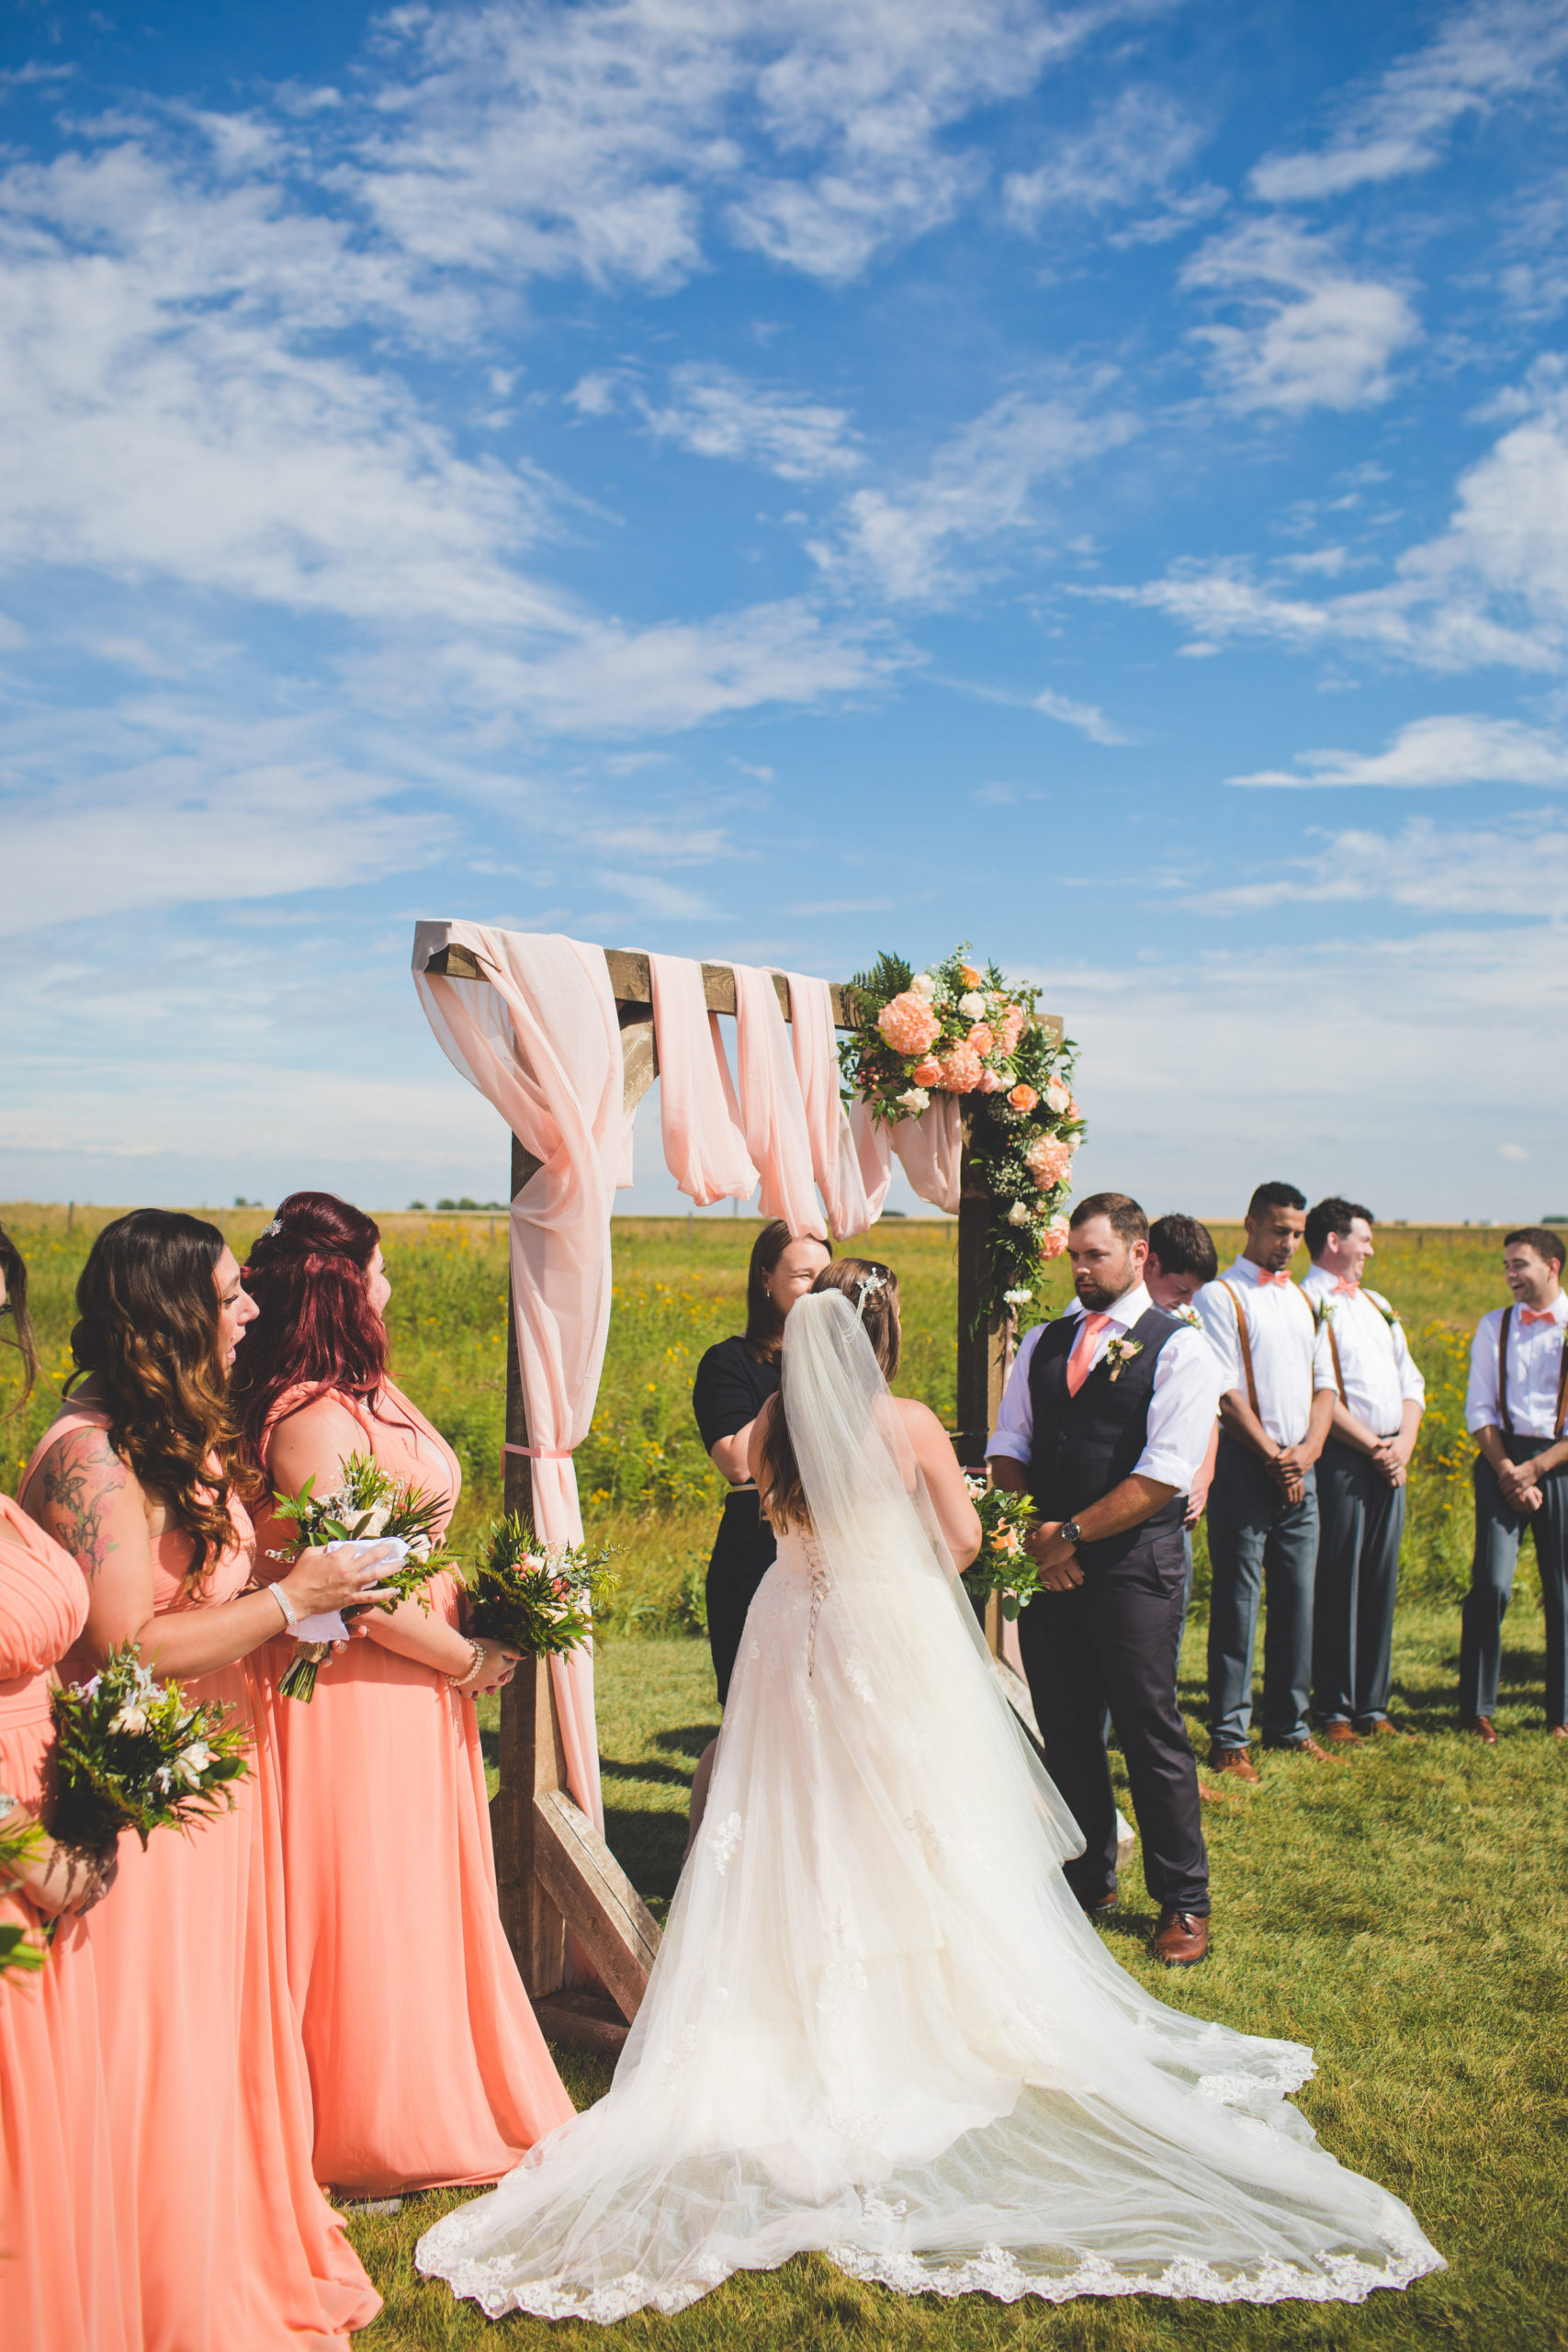 couple standing at the alter of their outdoor wedding in a prairie field with bright blue skies. Bridal party looking spiffy in vibrant coral dresses and coral bow ties.